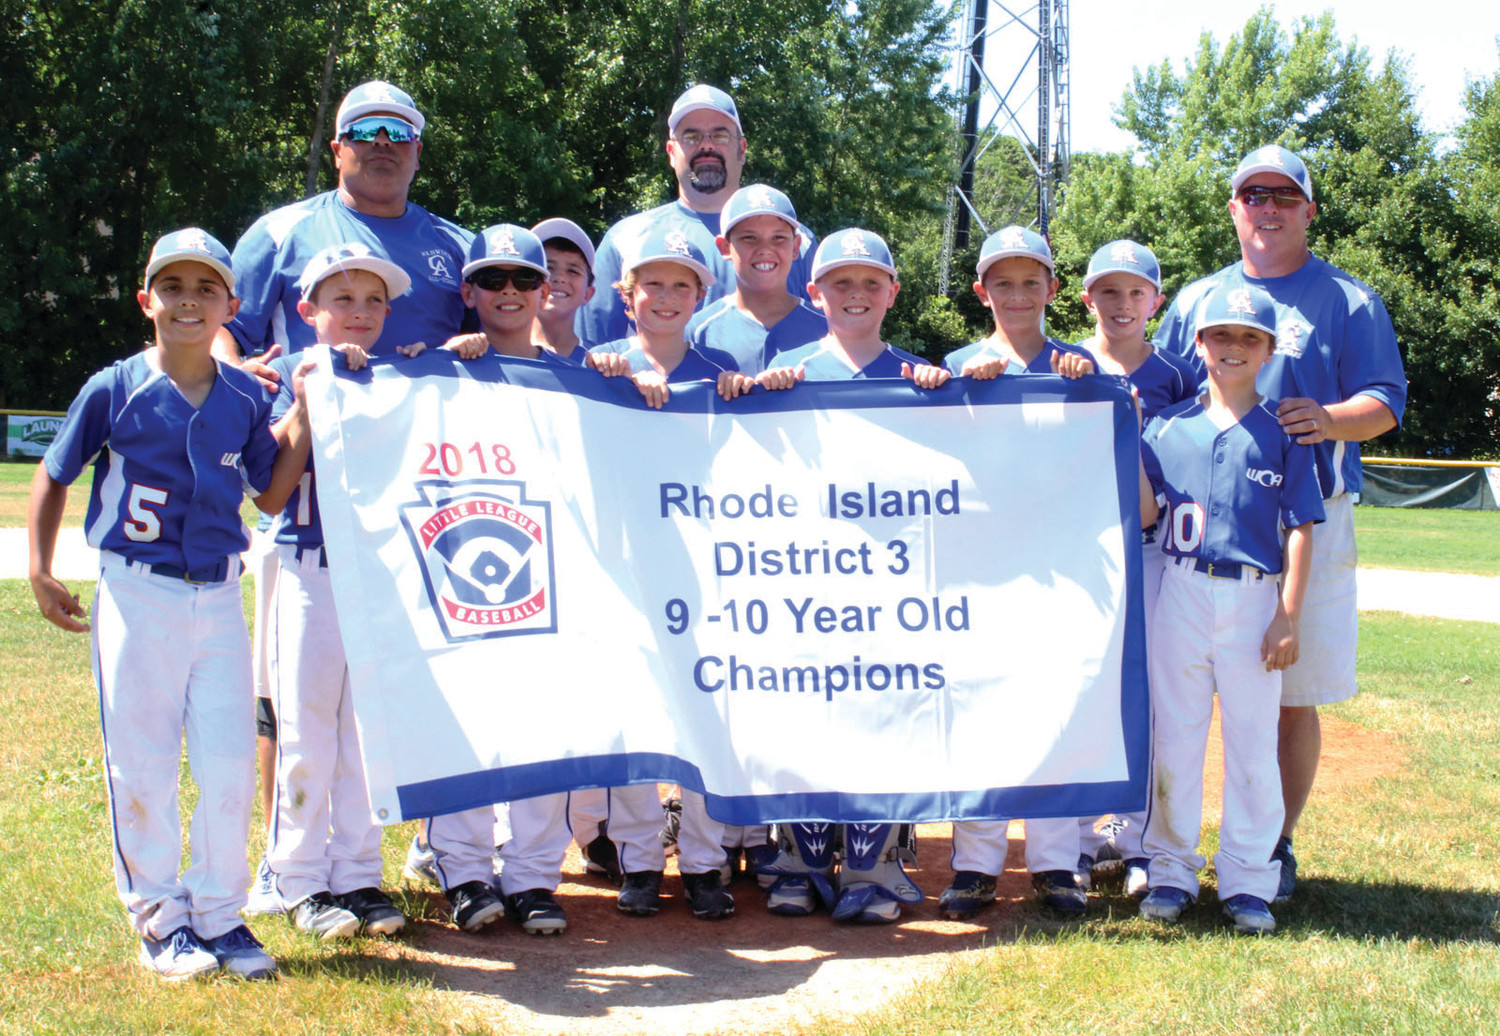 KINGS OF THE HILL: The Warwick Continental American Little League 9-10 year old All-Star team after winning the District 3 title on Saturday.